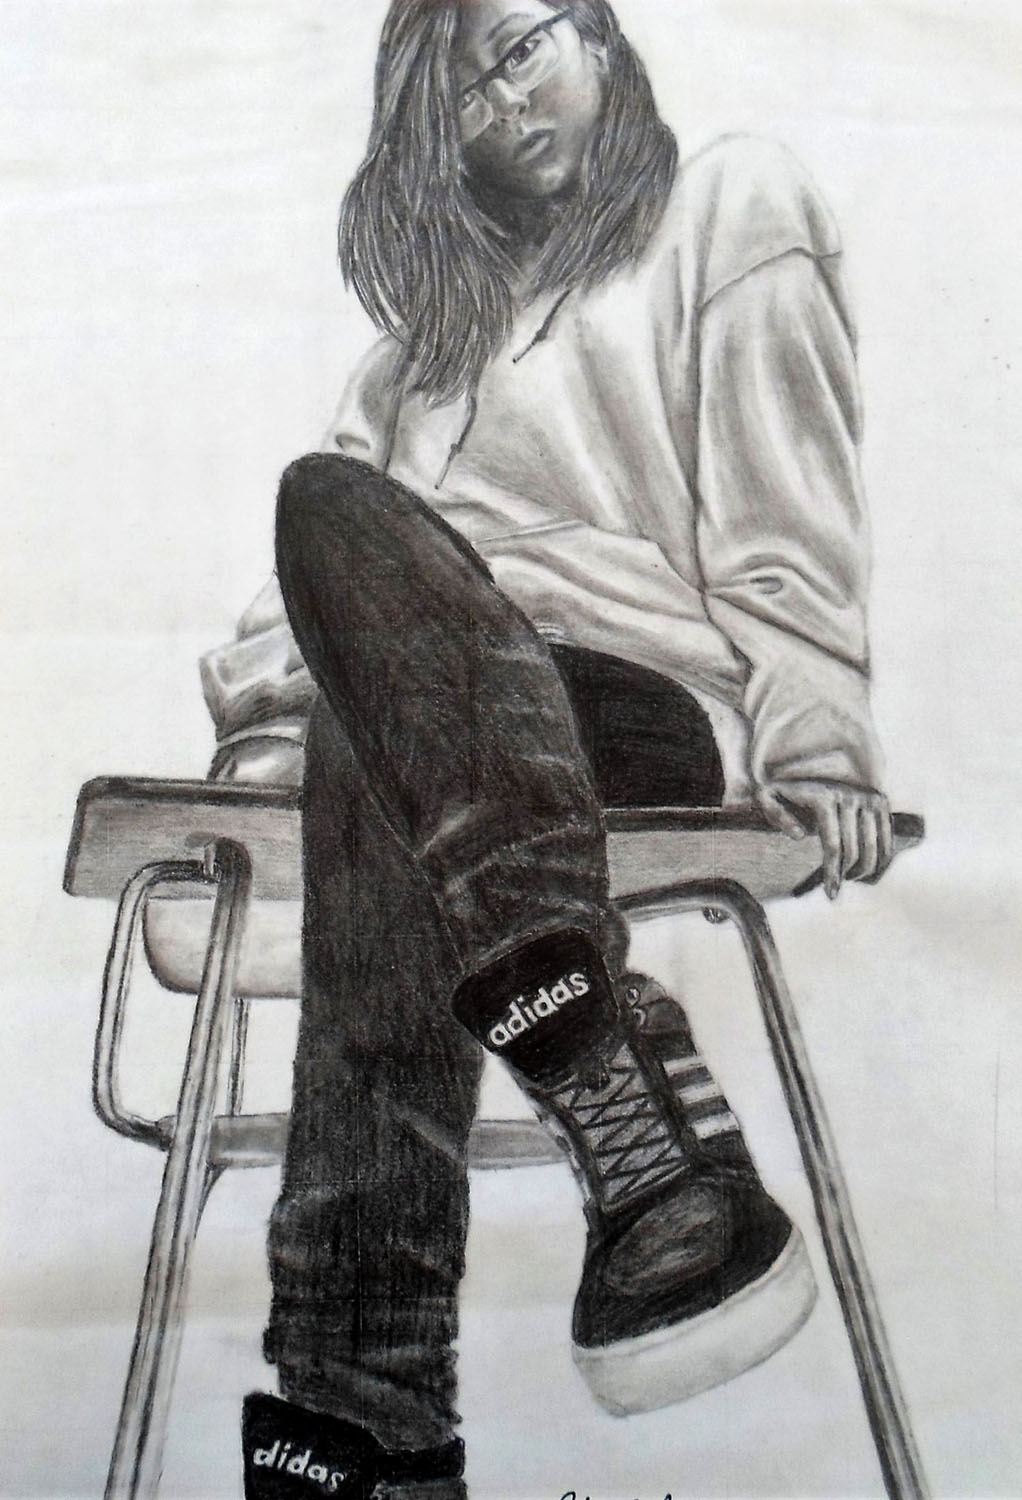 A black and white self portrait of a teenage girl sitting in a school desk from the perspective of t